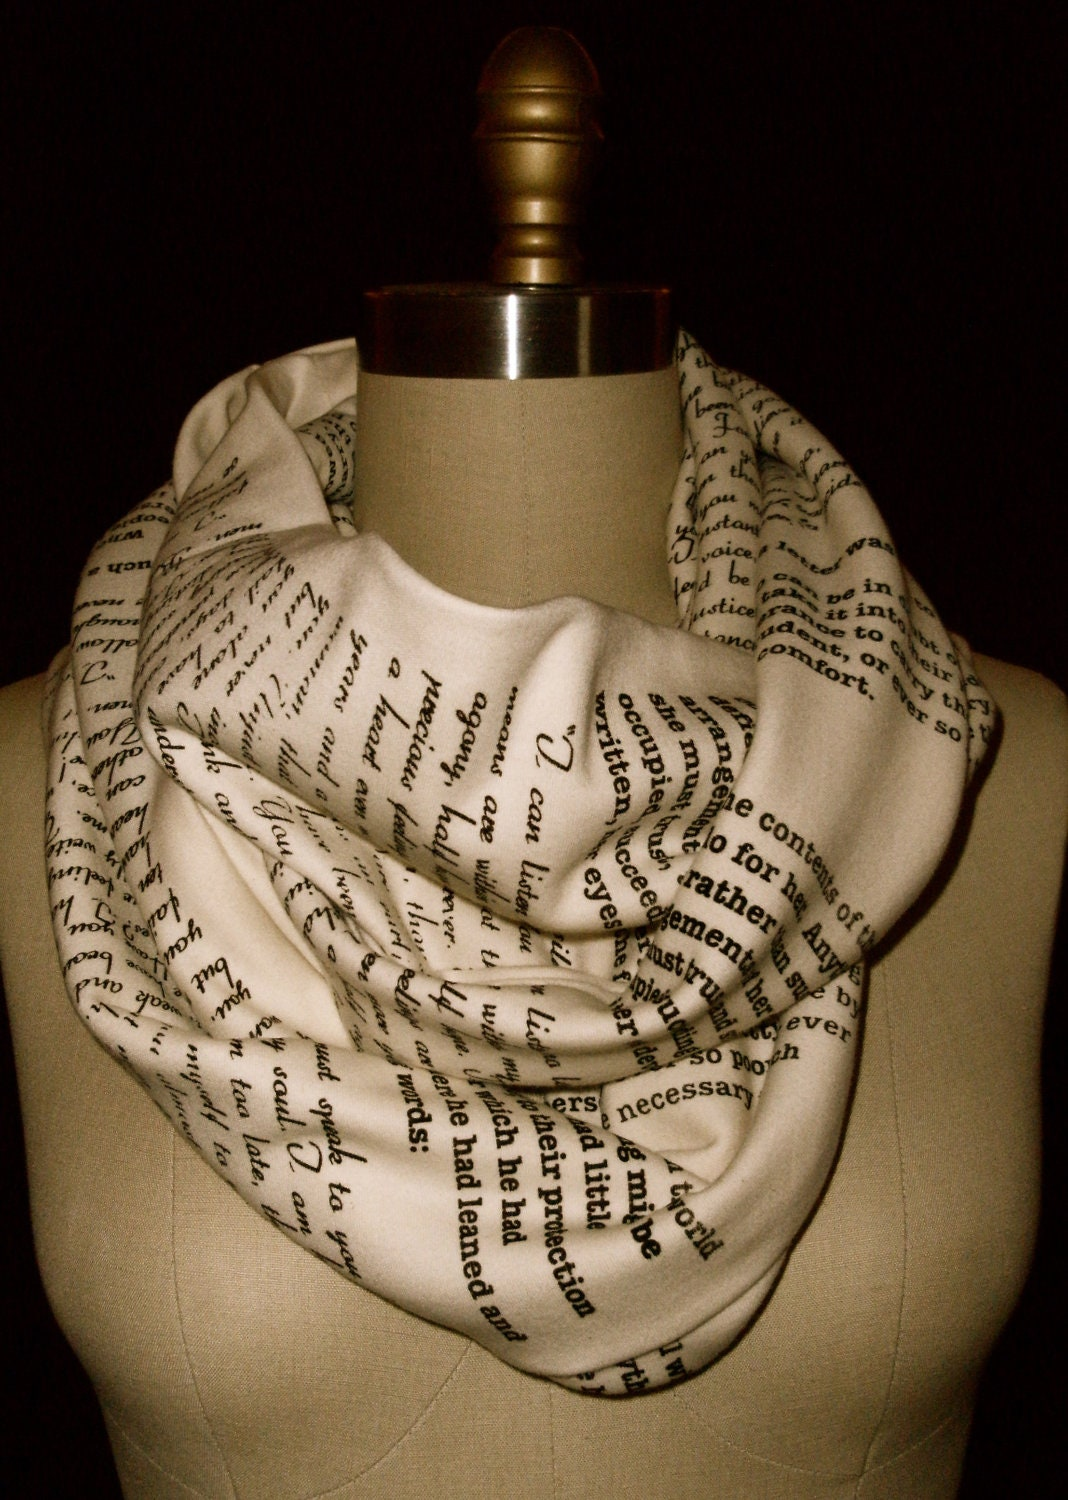 Wrap Up With A Good Book Scarf: Persuasion by Jane Austen